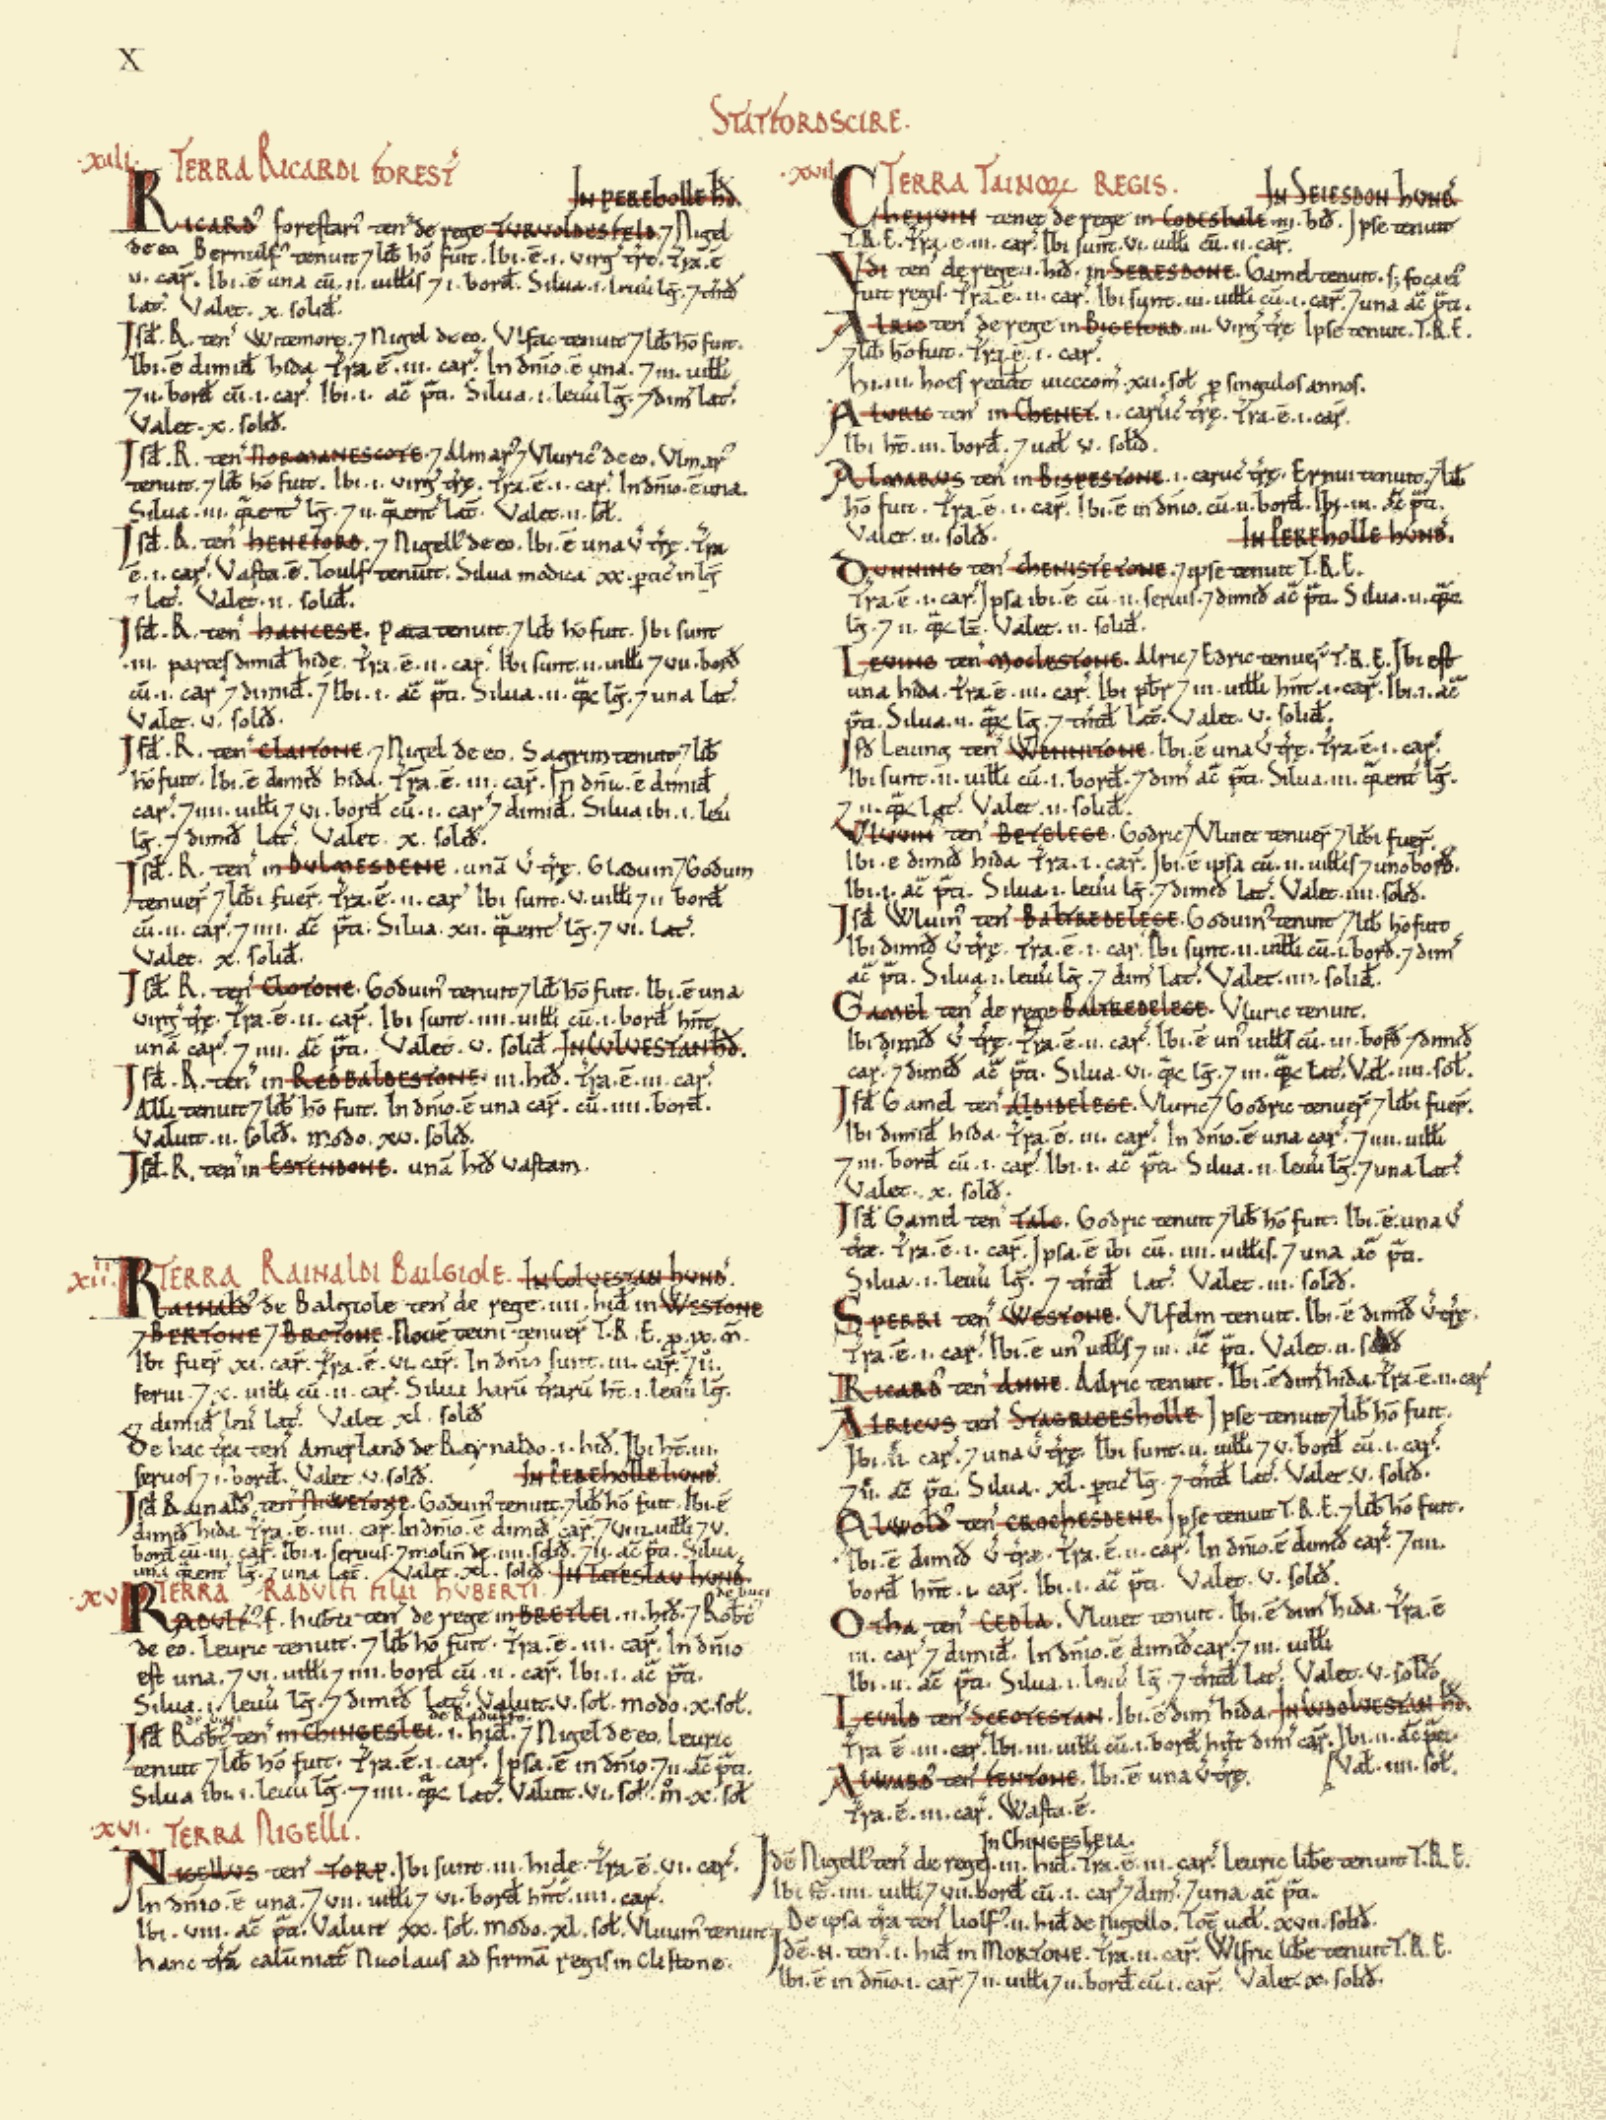 Domesday Staffordshire page 10